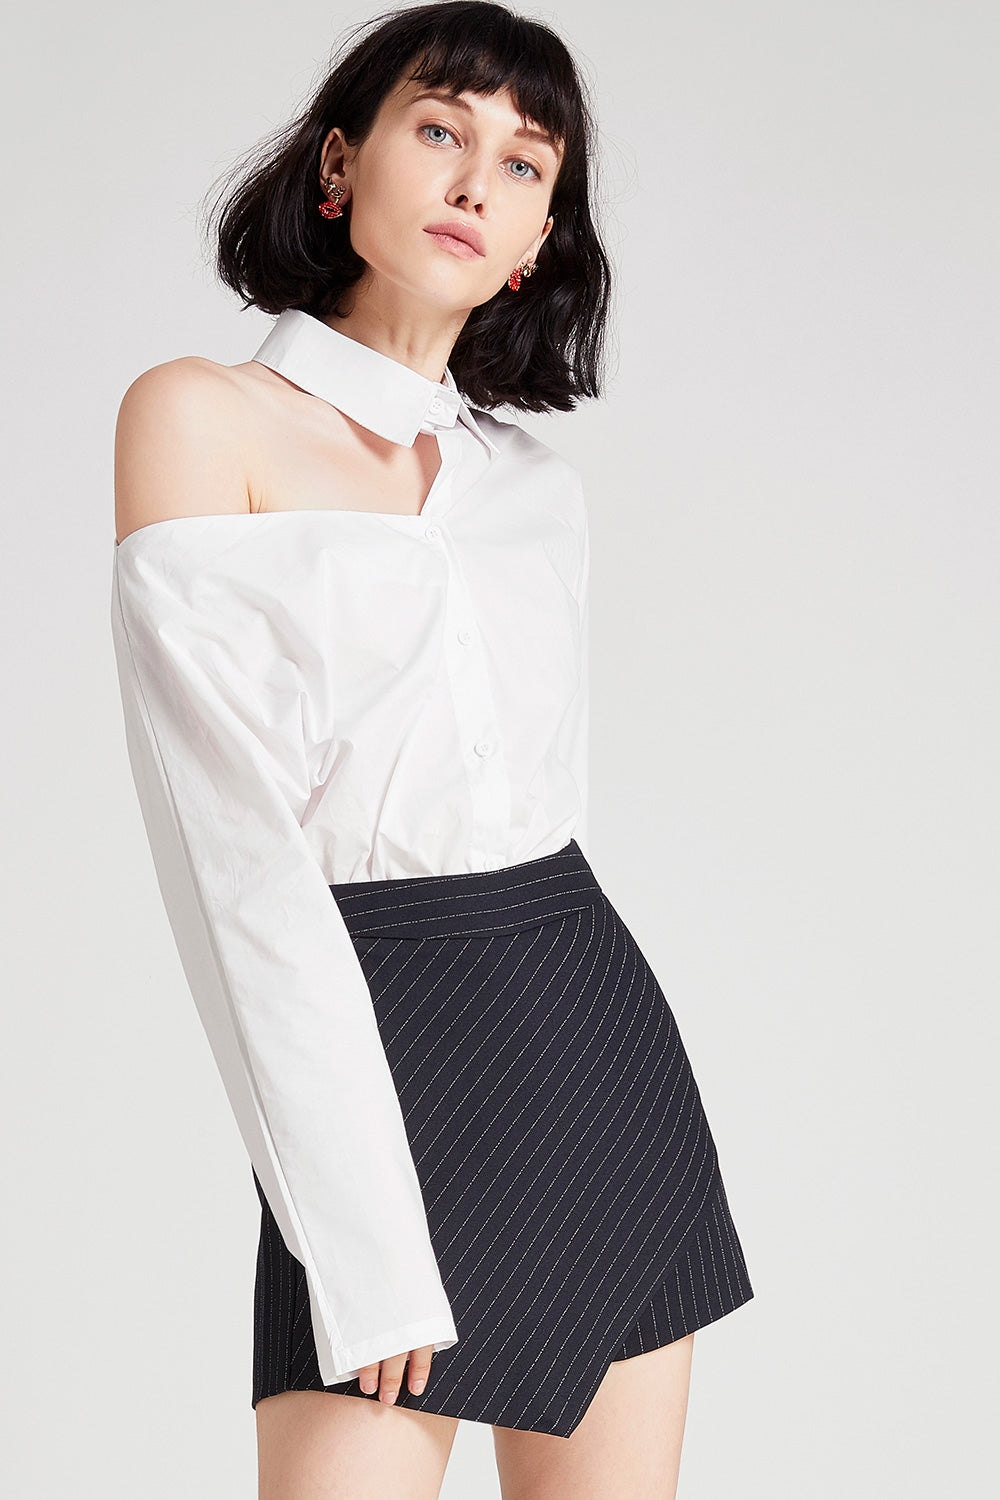 Anne One Shoulder Cut Out Top